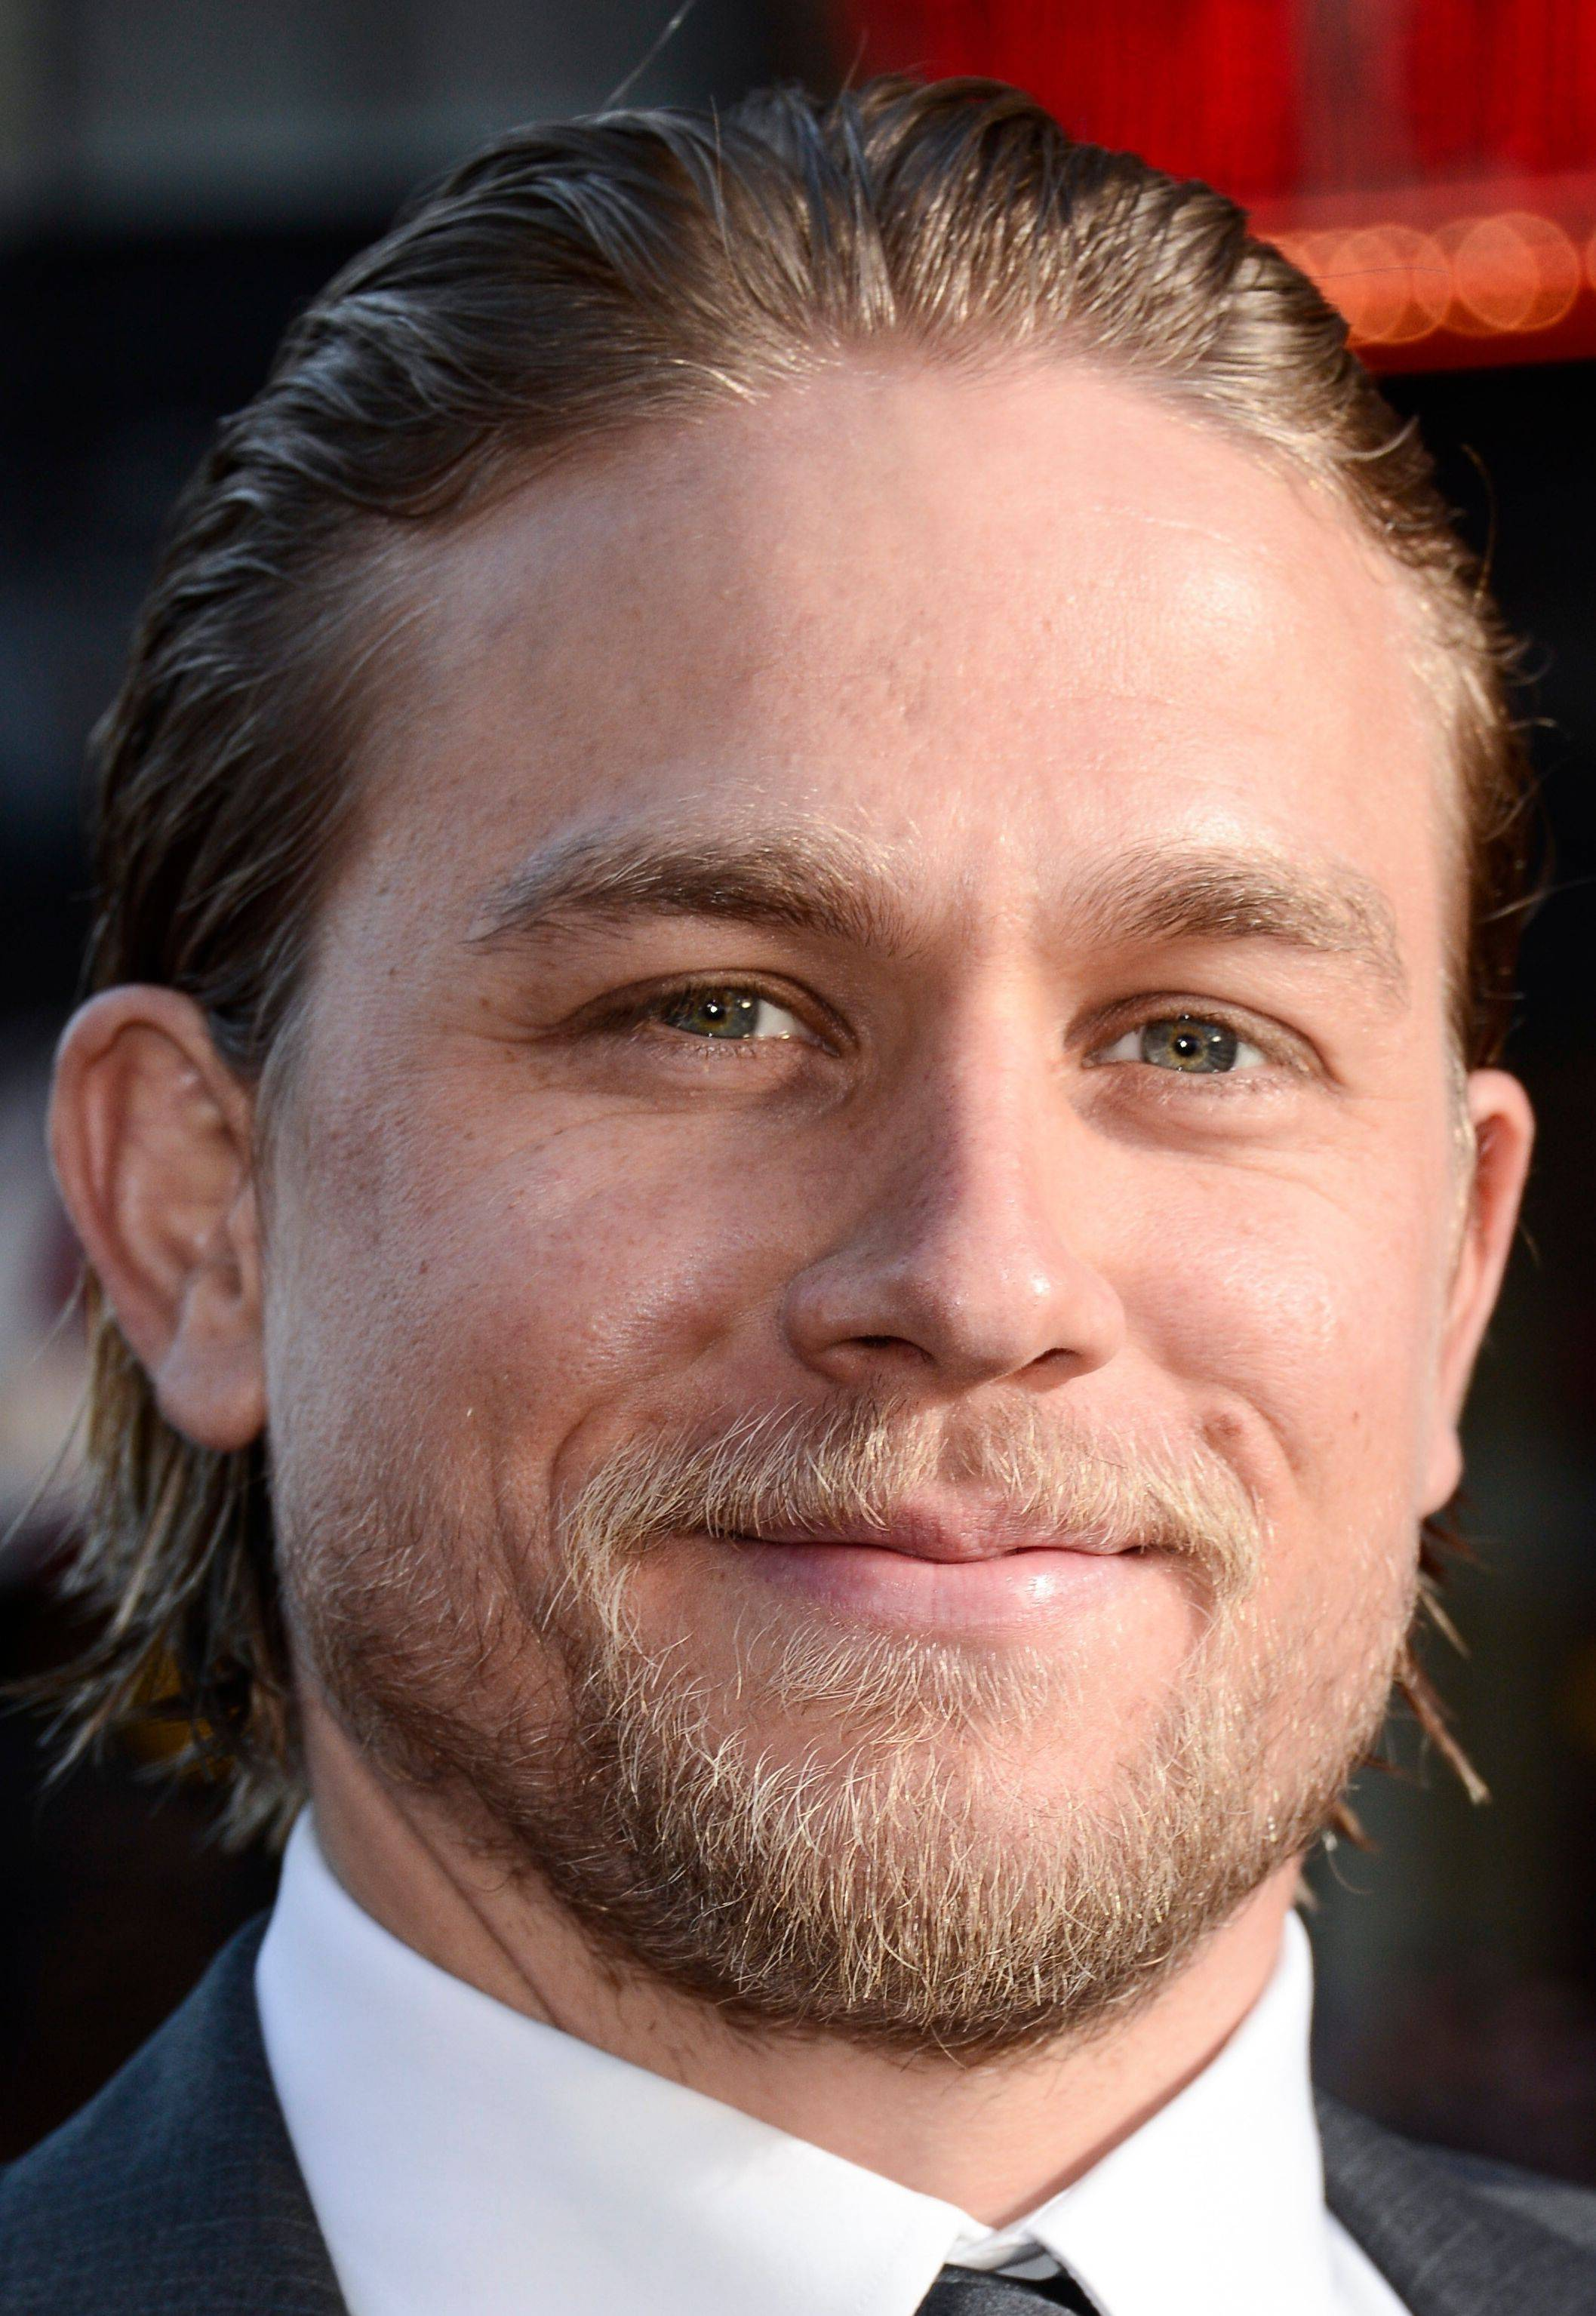 """Sons of Anarchy"" star Charlie Hunnam has dropped out of the ""Fifty Shades of Grey"" film adaptation citing scheduling conflicts."